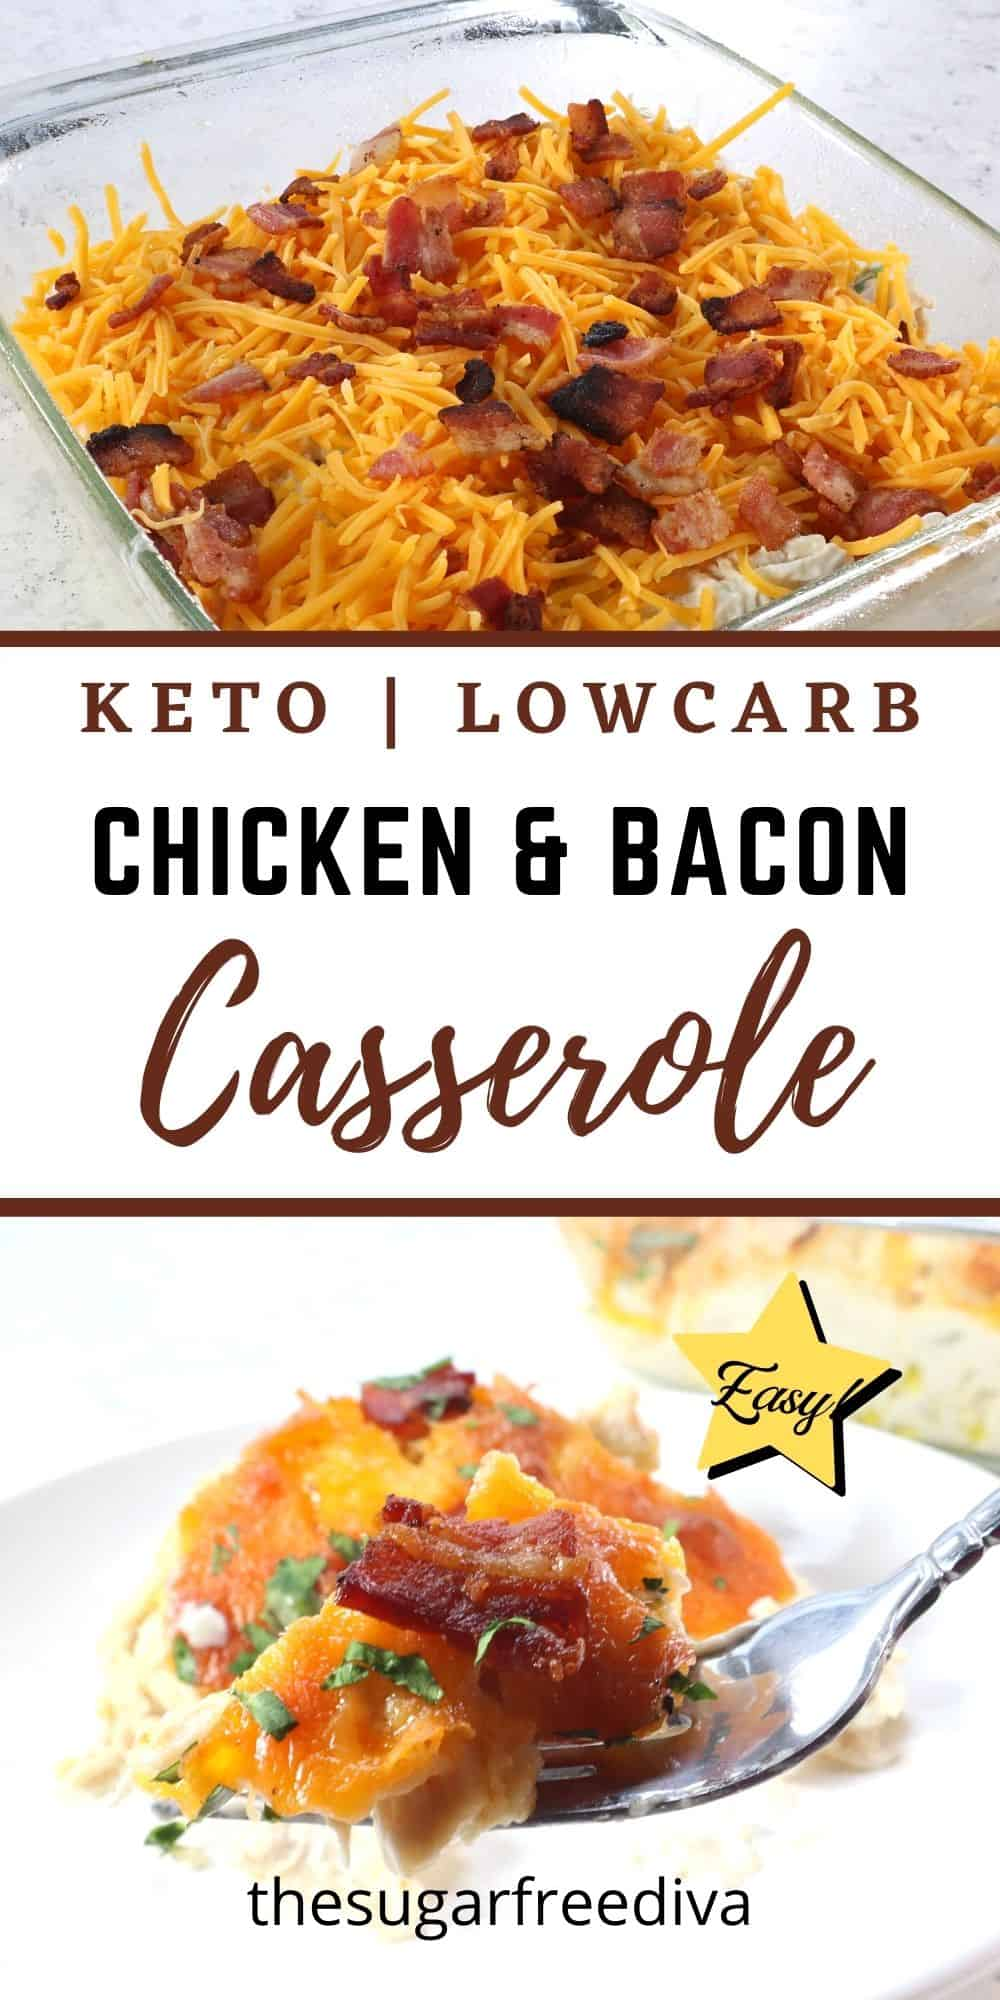 Keto Low Carb Chicken and Bacon Casserole